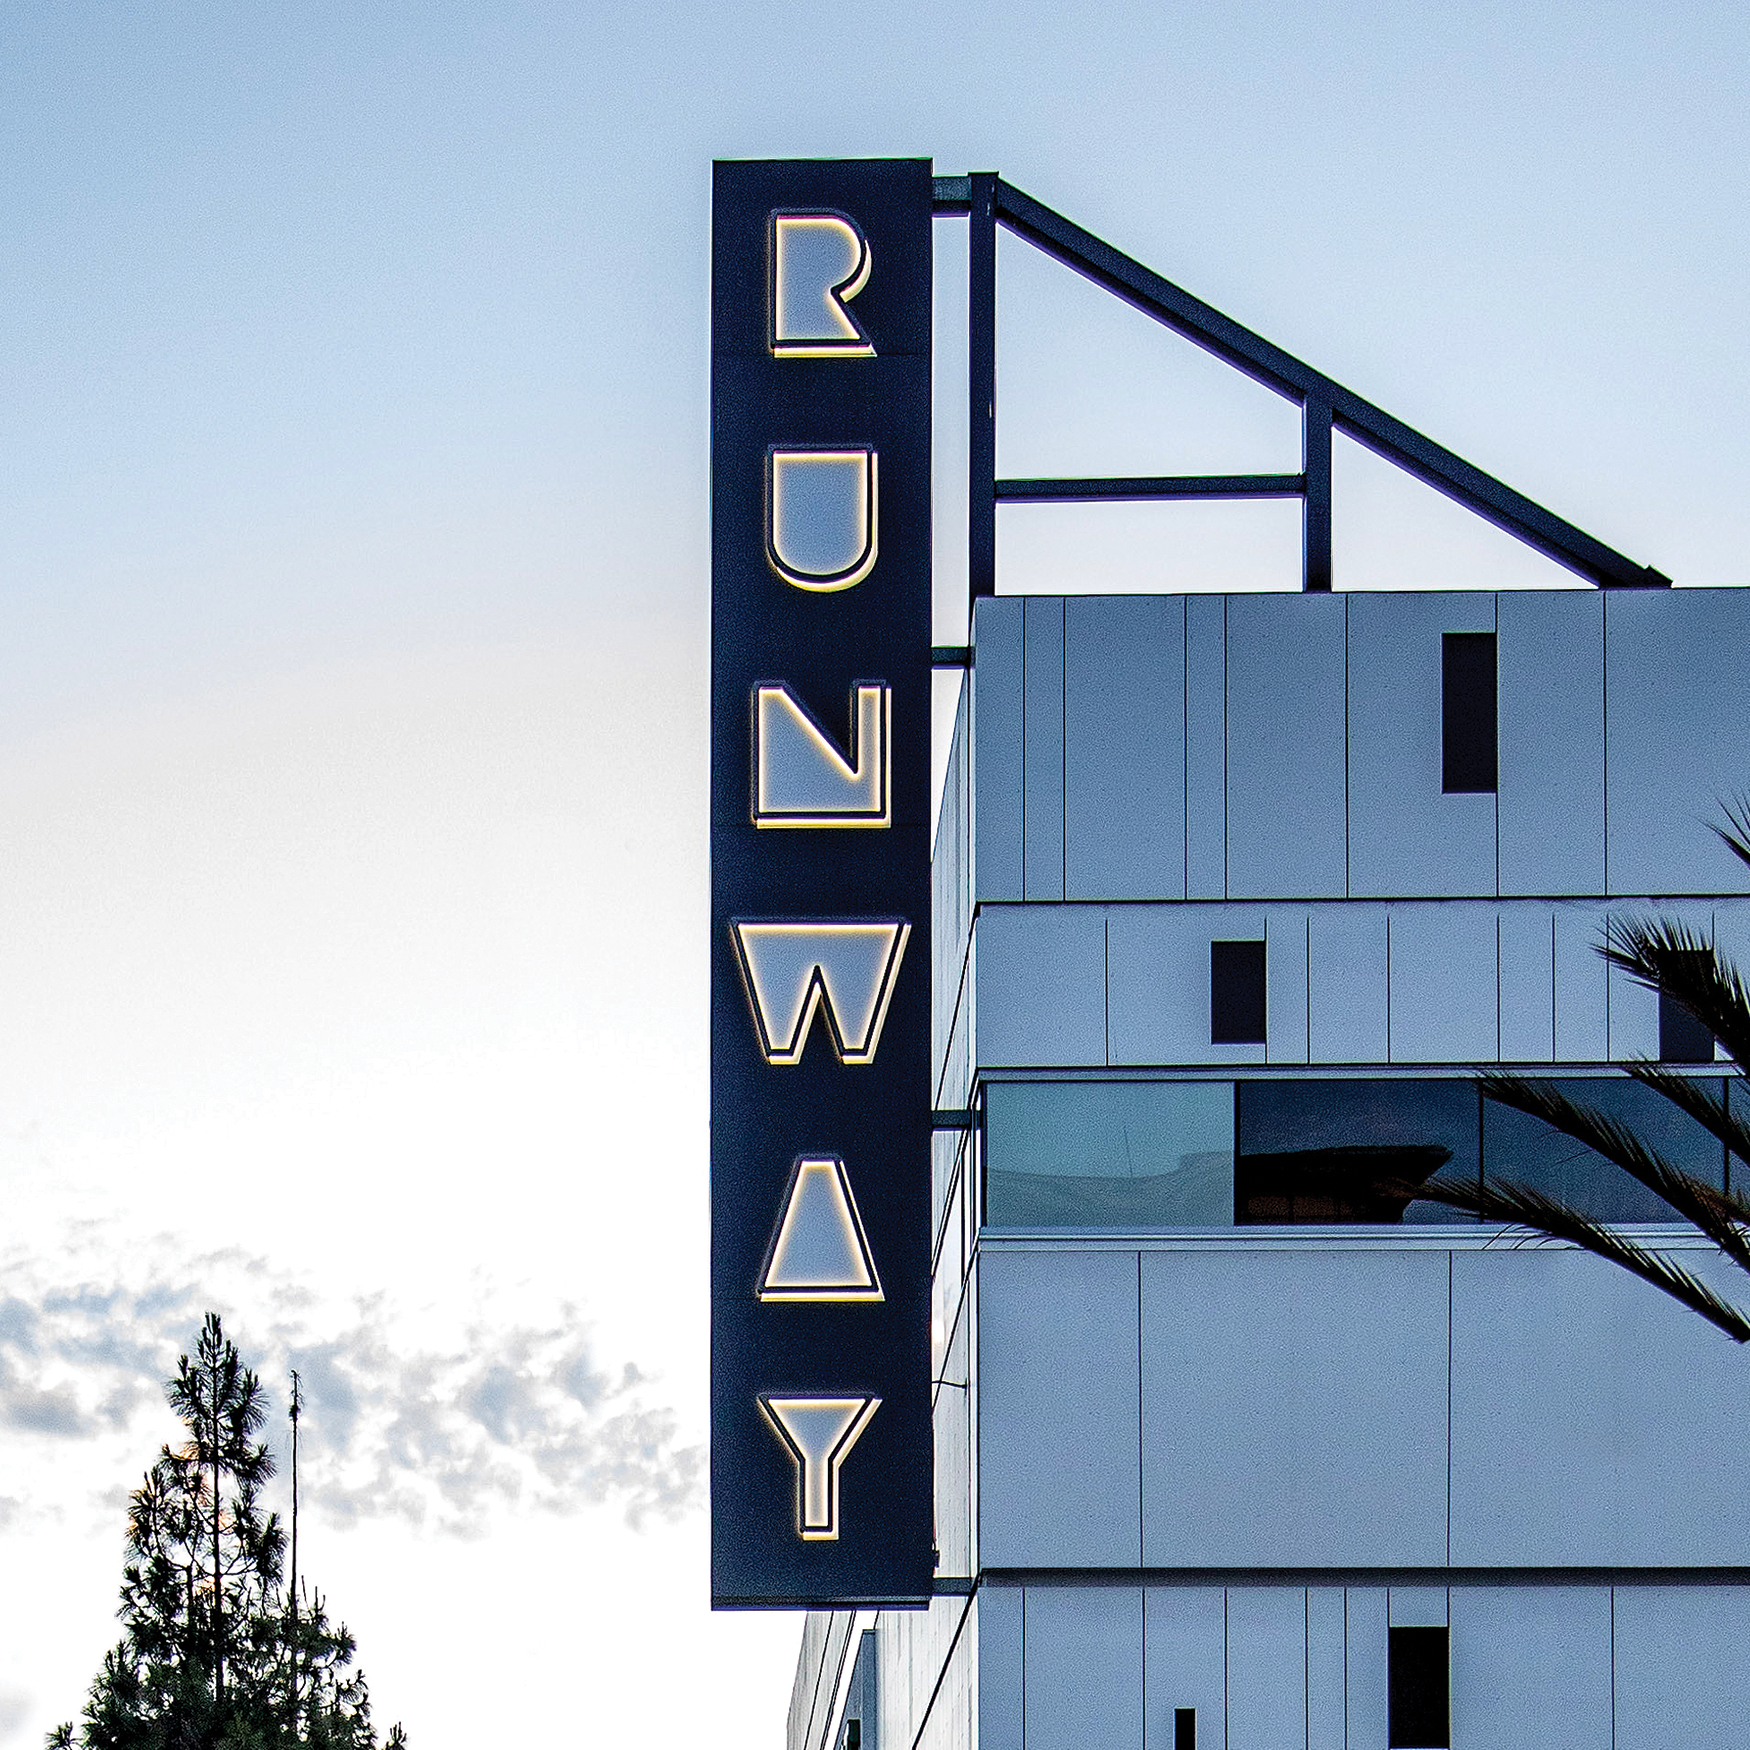 Runway Playa Vista project identity marquee sign and parking directional sign.